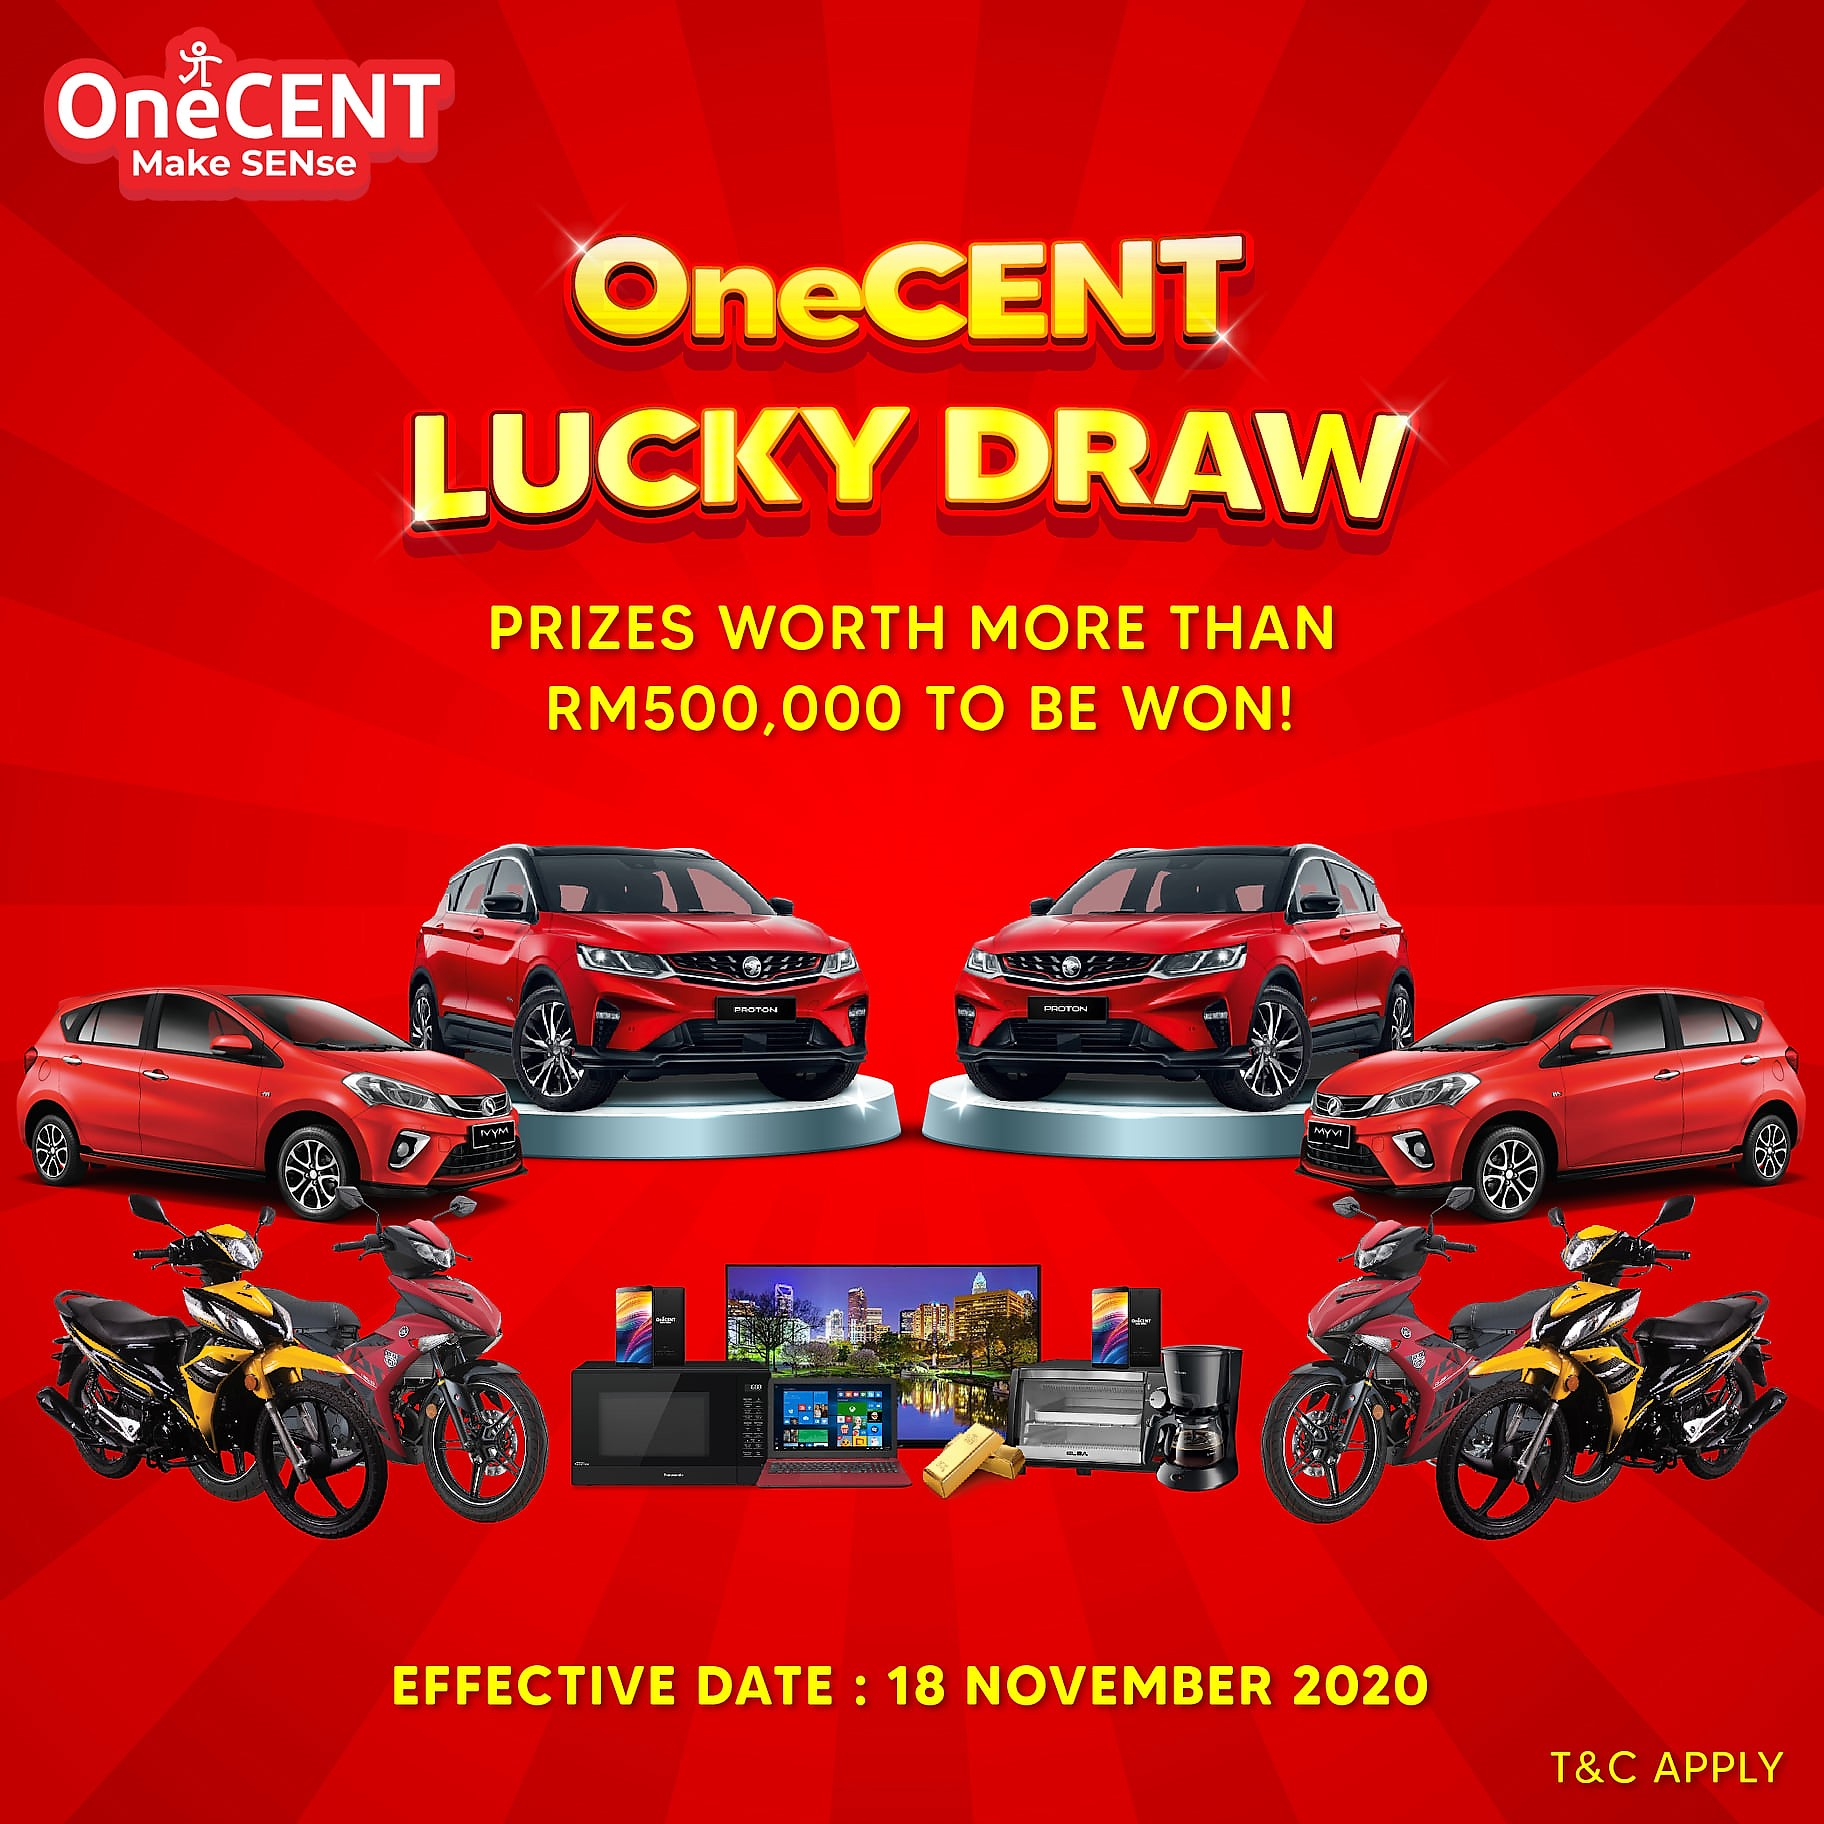 OneCENT Lucky Draw